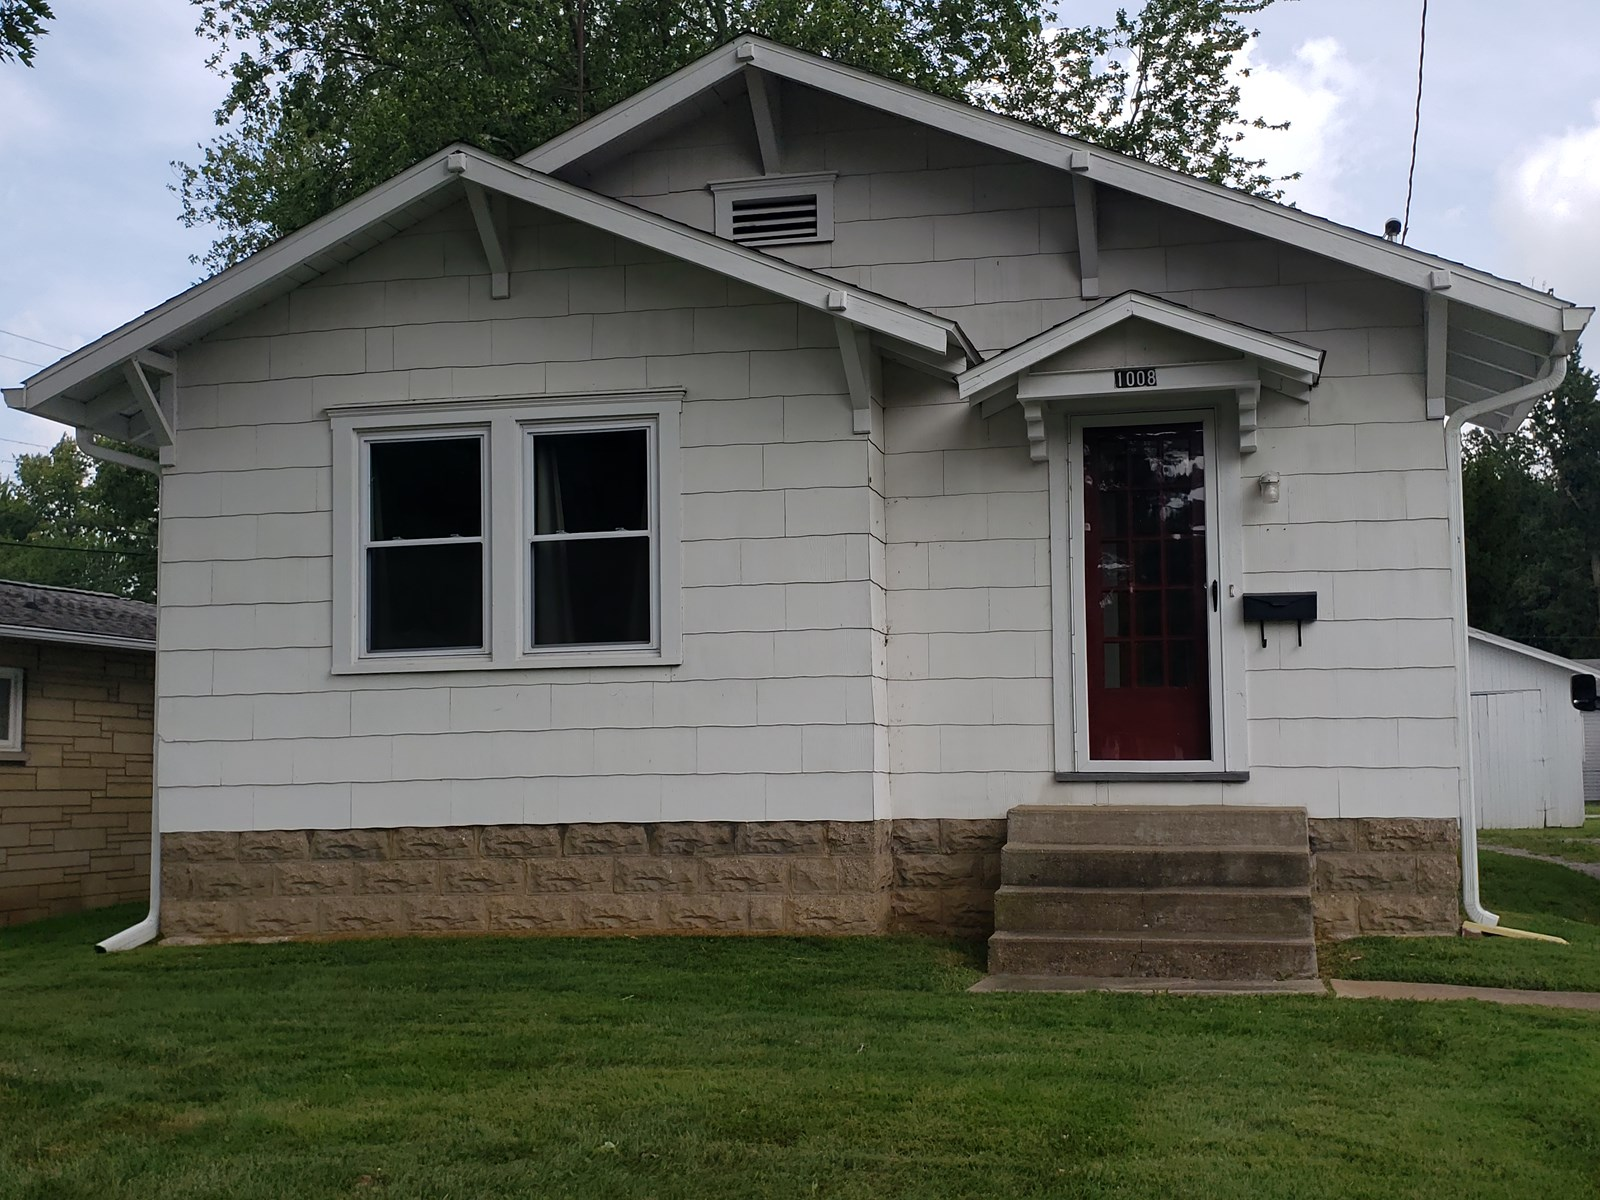 3 Bedroom, 1 Bath Updated Home, Robinson, IL